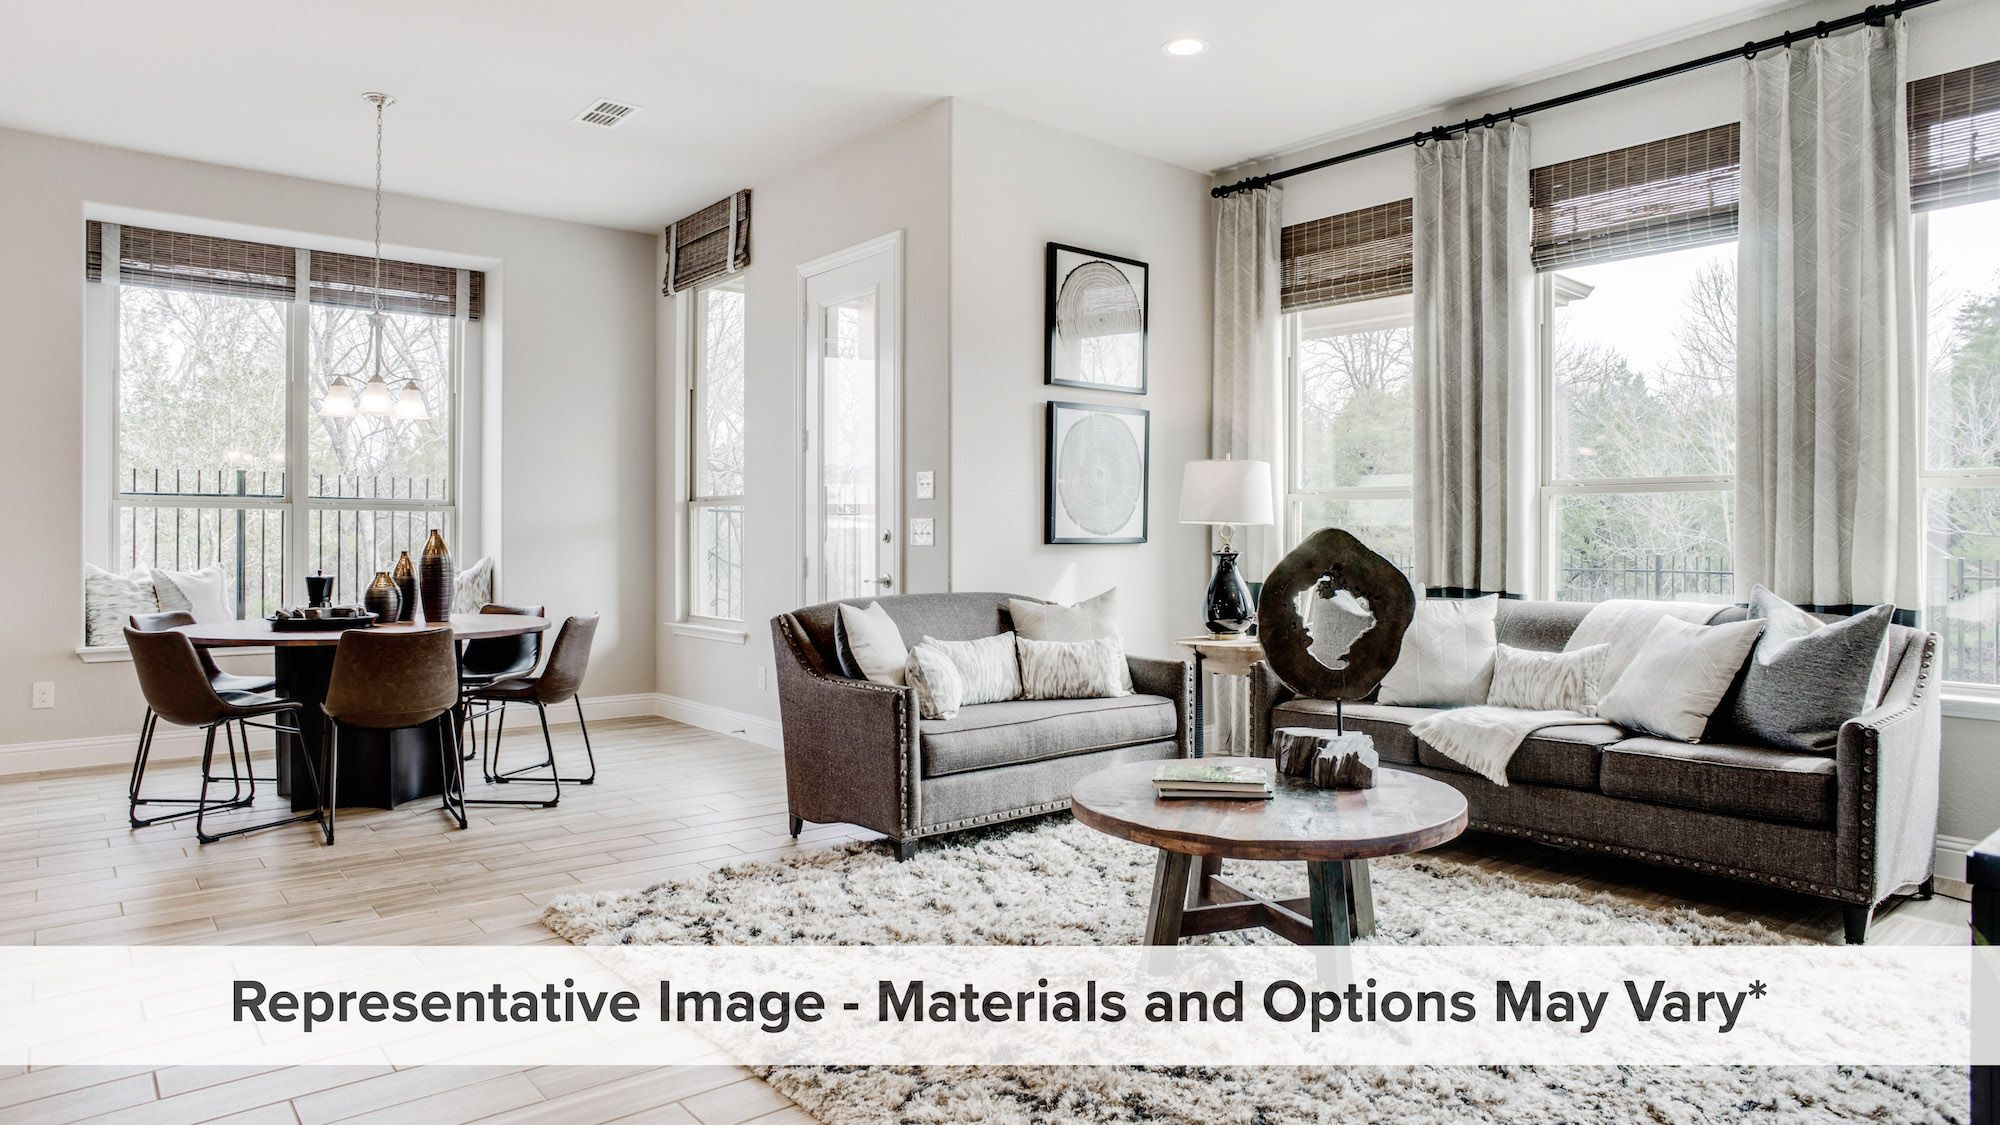 Living Area featured in the Ironwood By HistoryMaker Homes    in Dallas, TX